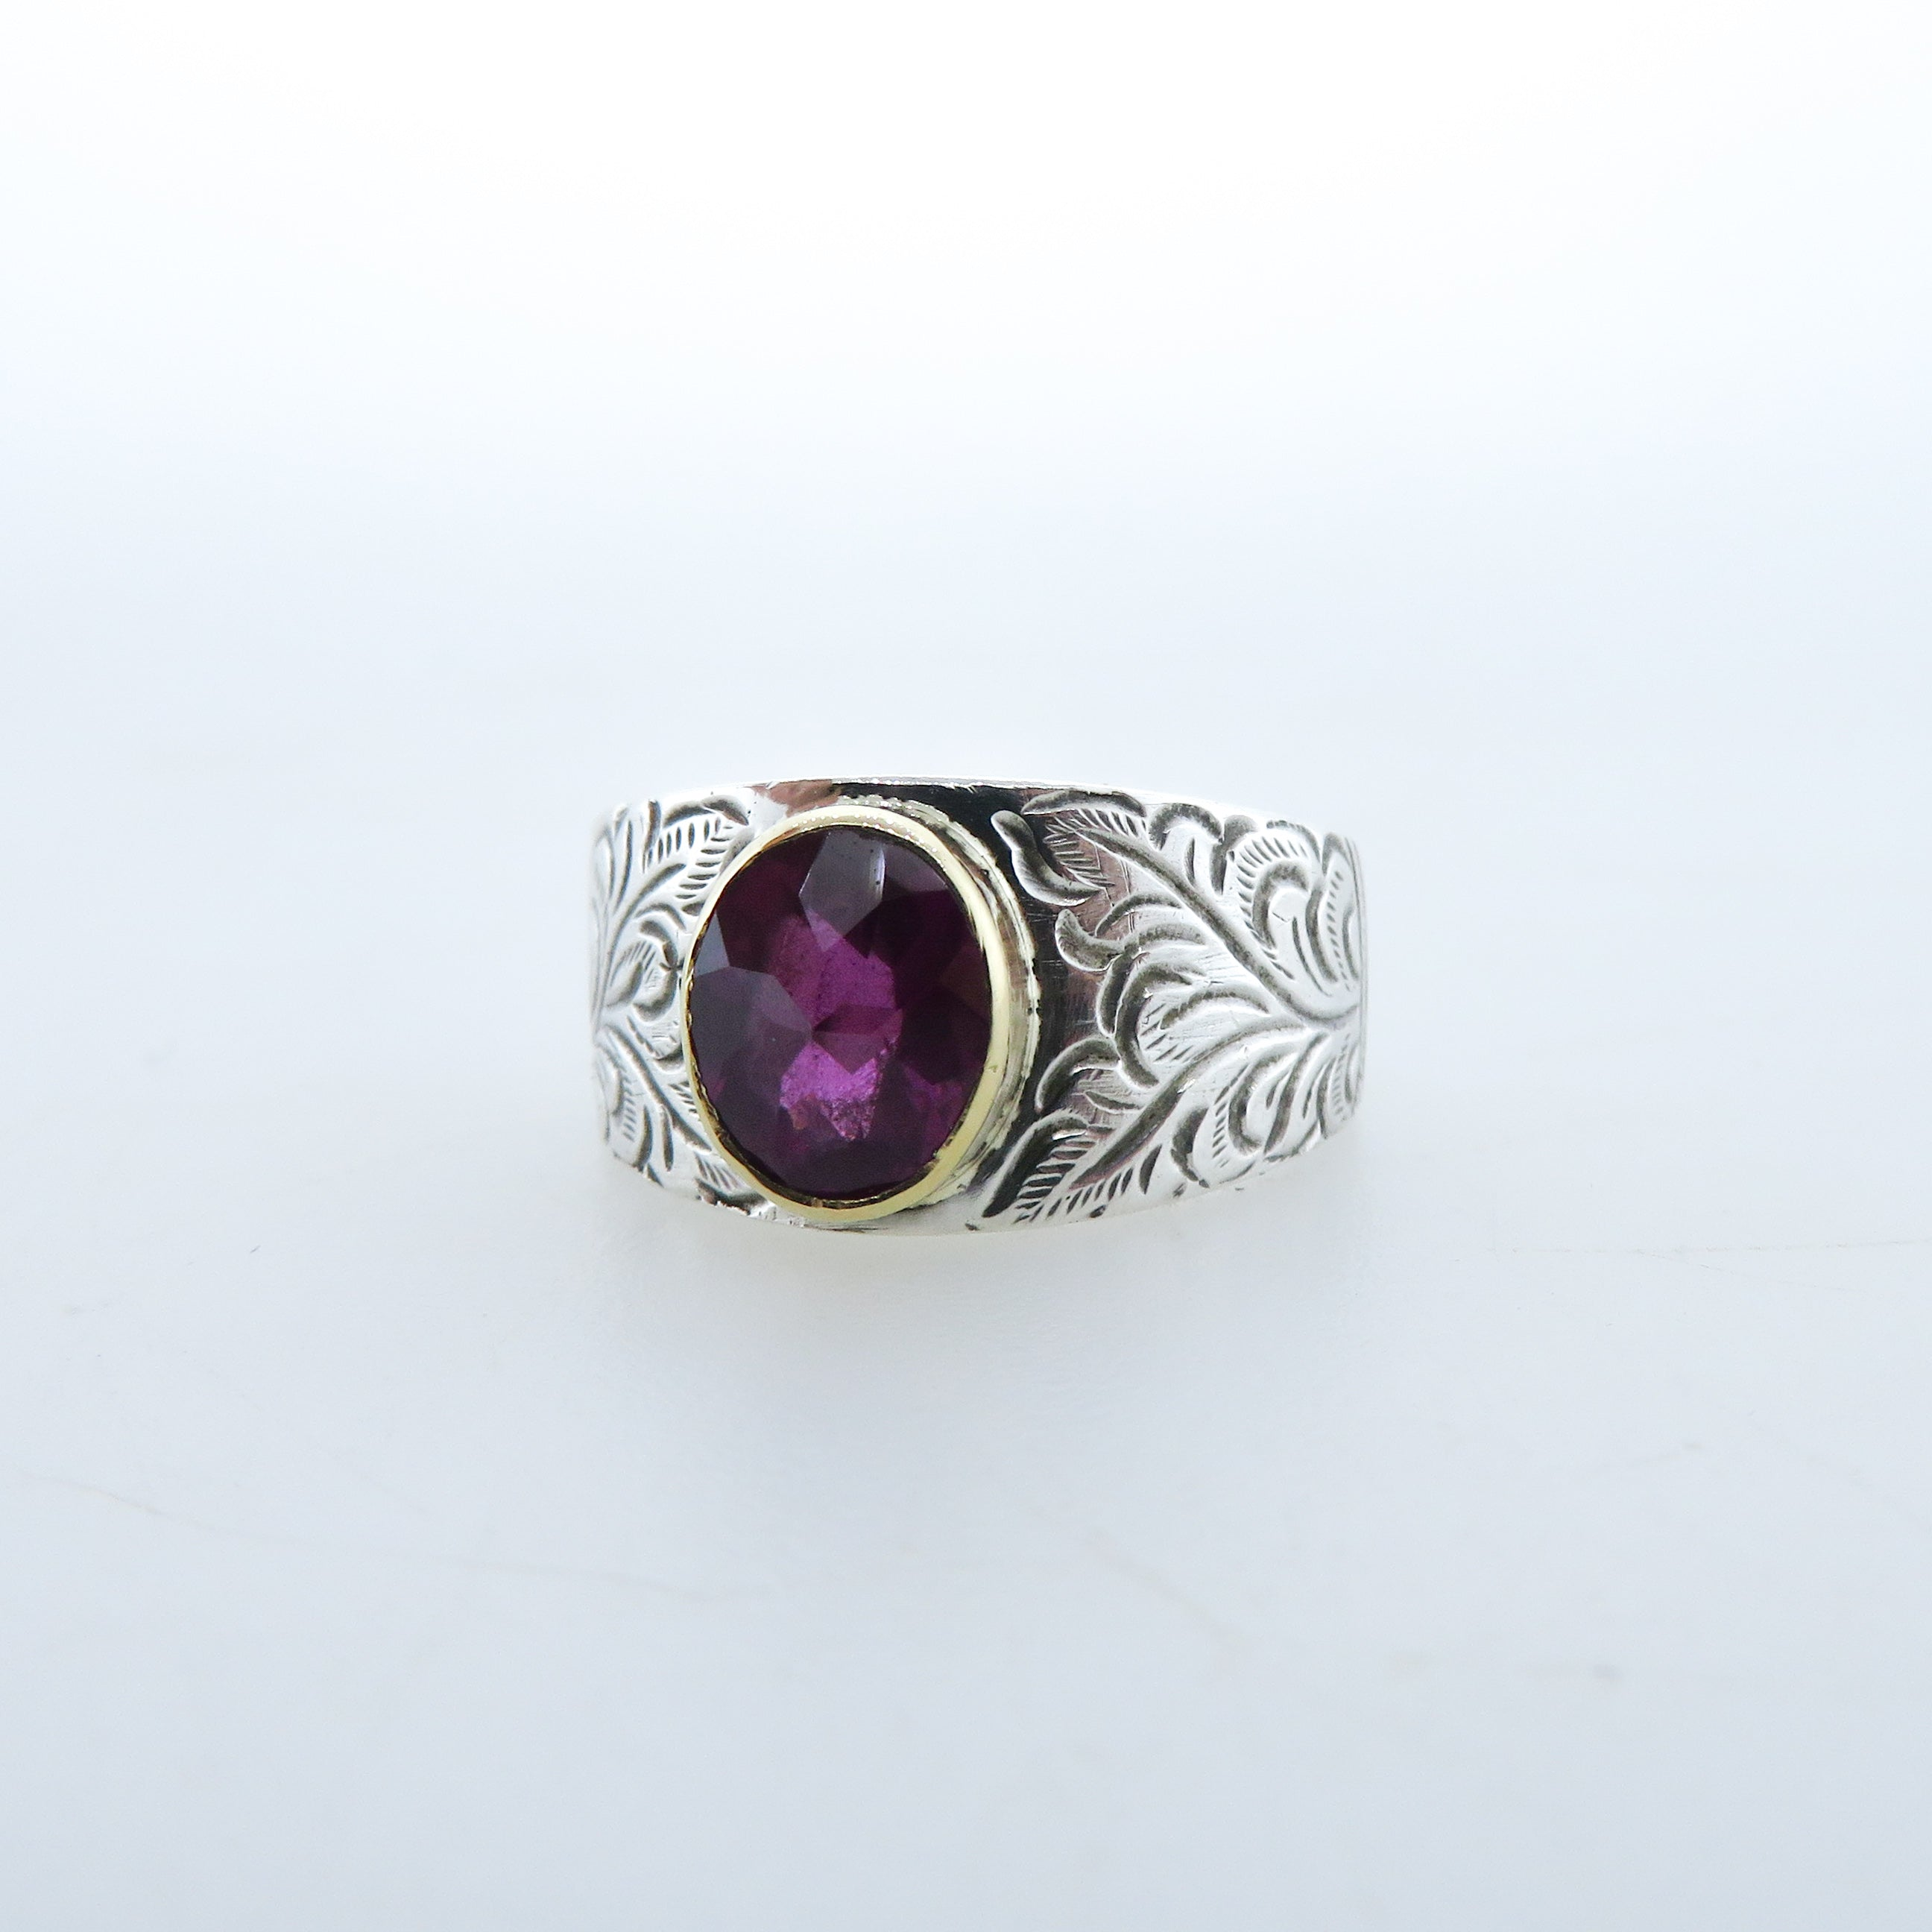 Pink Tourmaline Sterling Silver Ring with 18k Gold